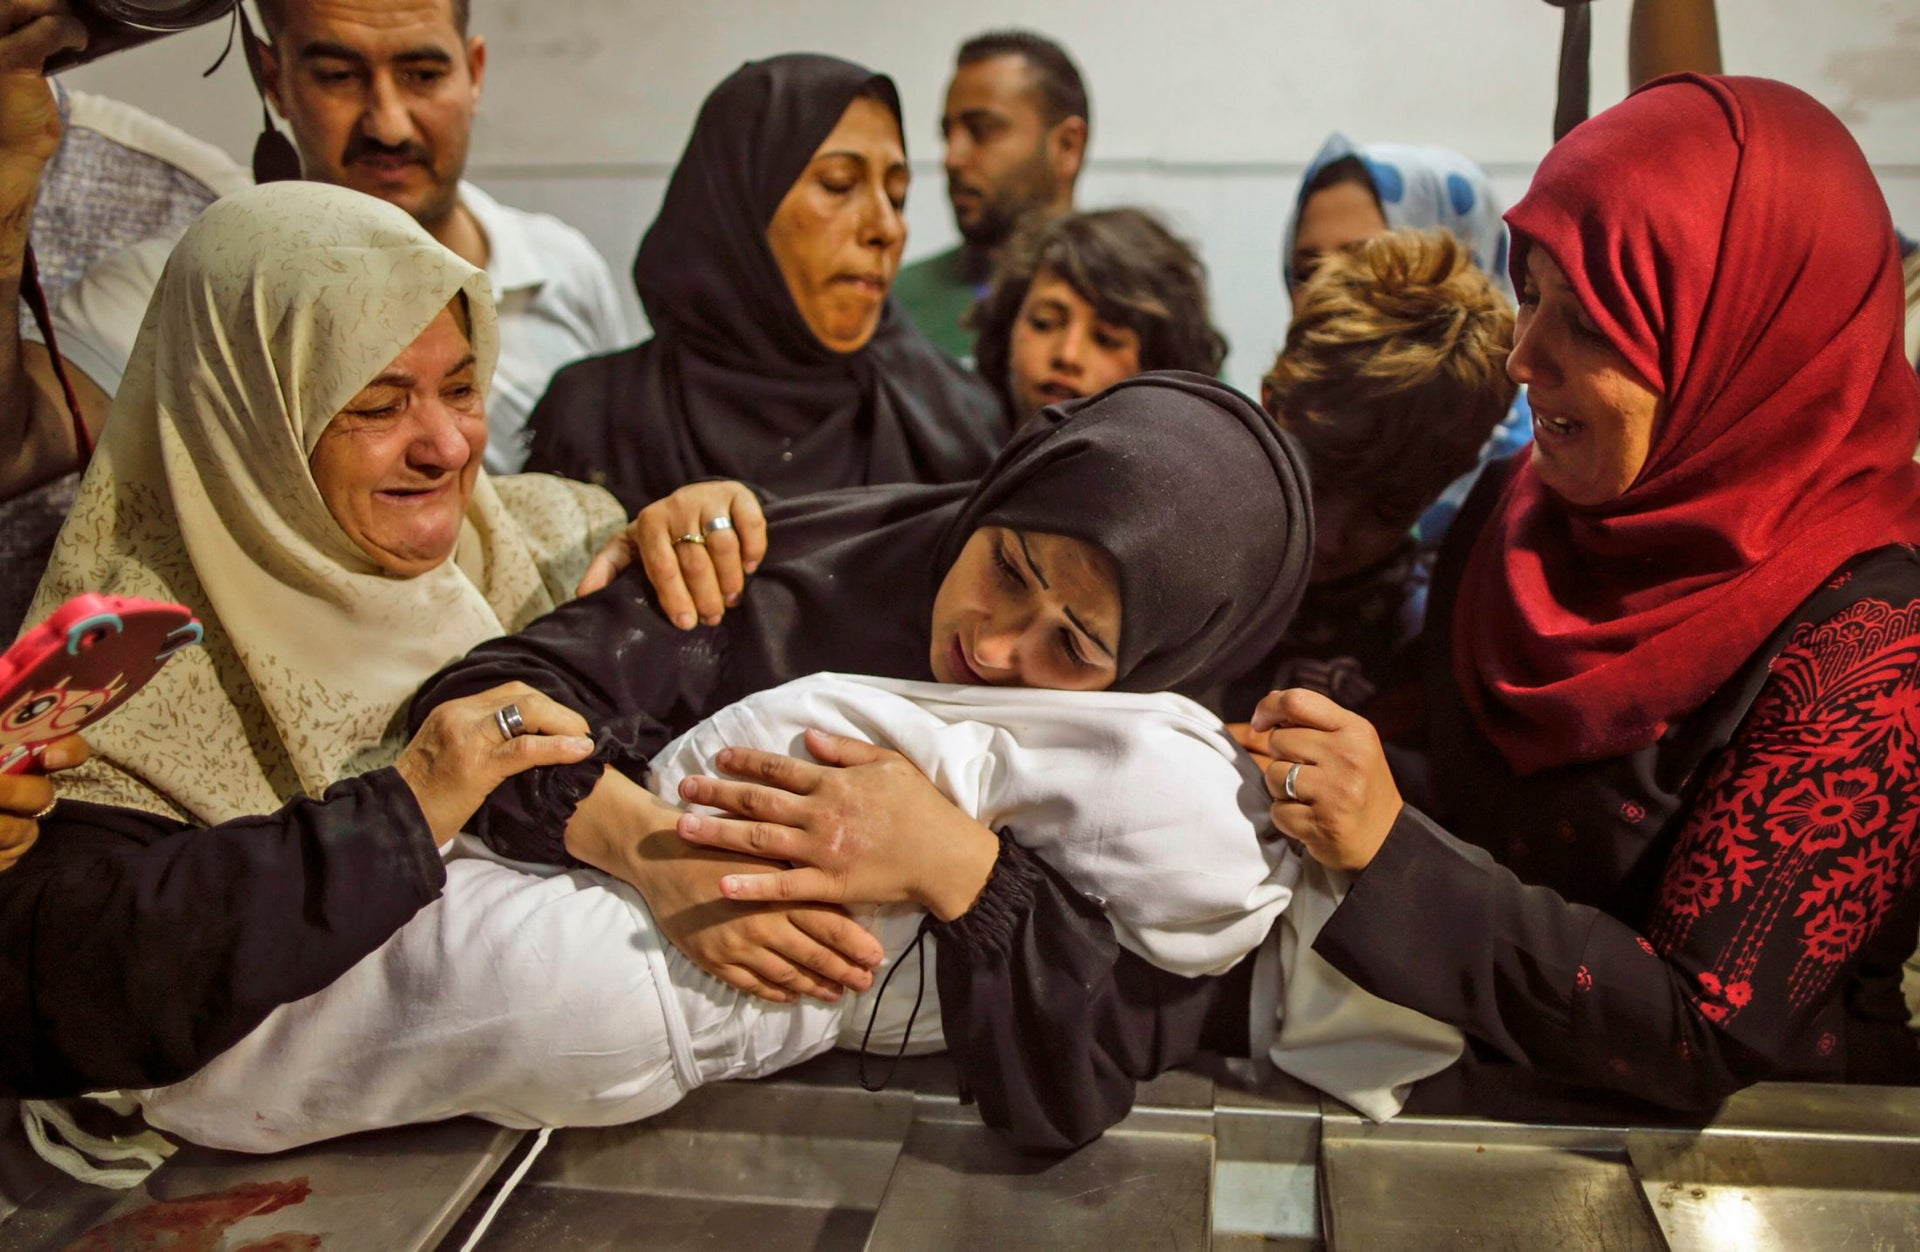 The mother of a Leila al-Ghandour, a Palestinian baby of 8 months who died Monday. Both Gaza health officials and Israeli officials cast doubts on claims she dies of tear gas inhalation